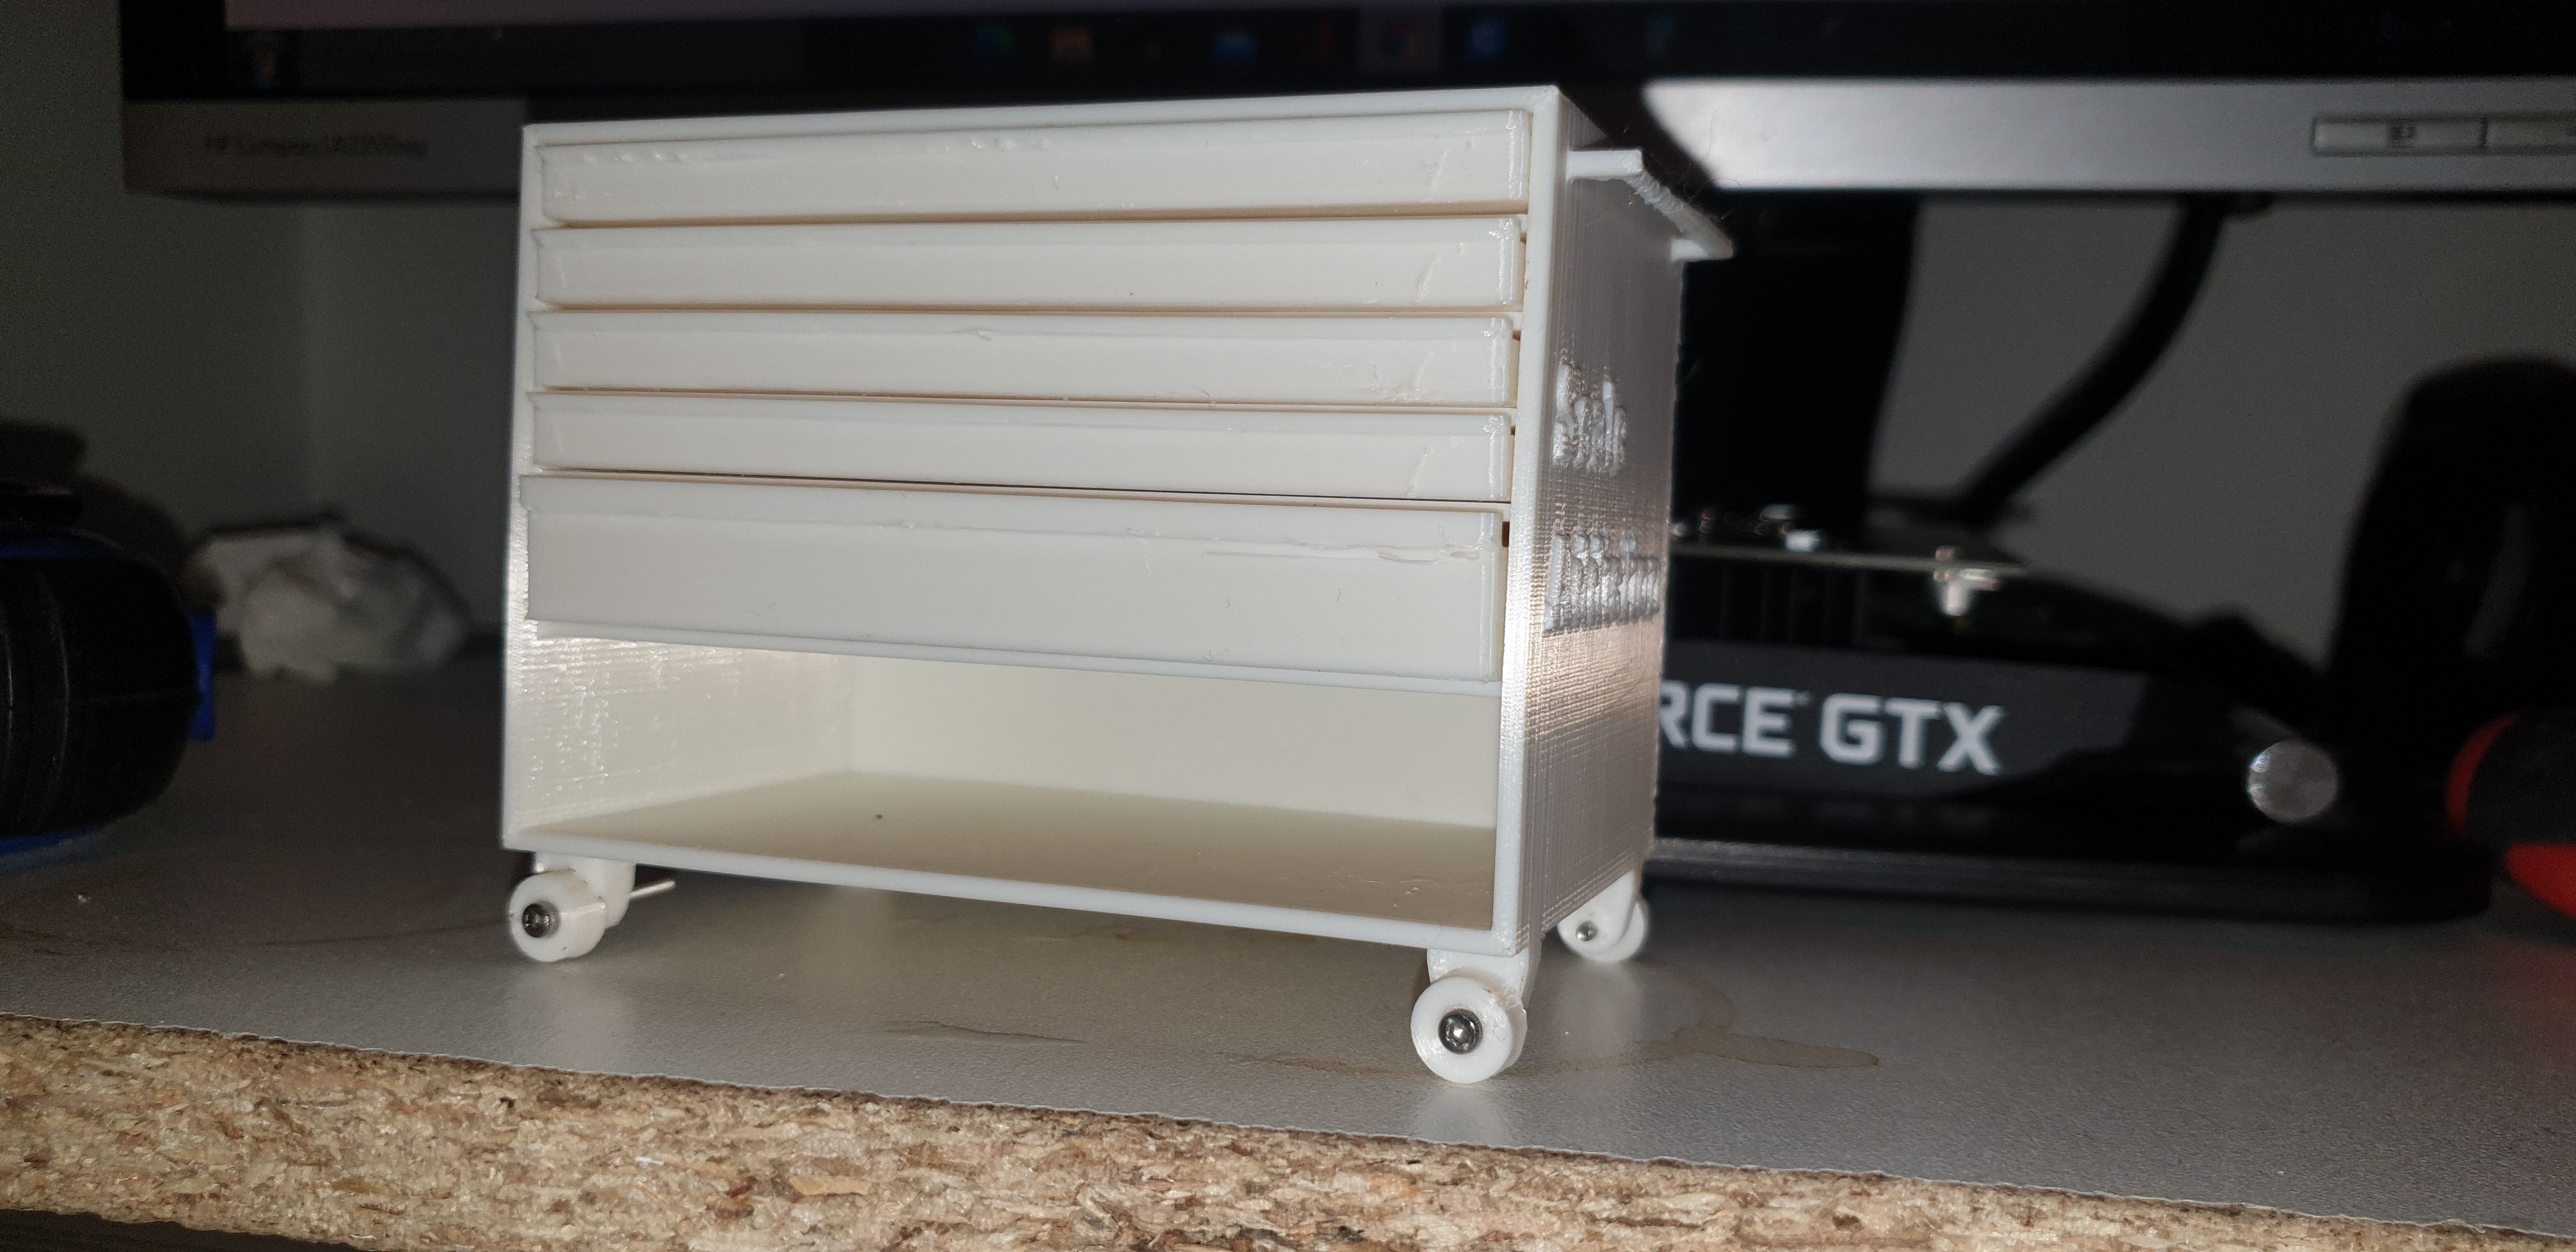 Download free STL file 1:10 scale garage  tool box • Template to 3D print, impression3dfrancais